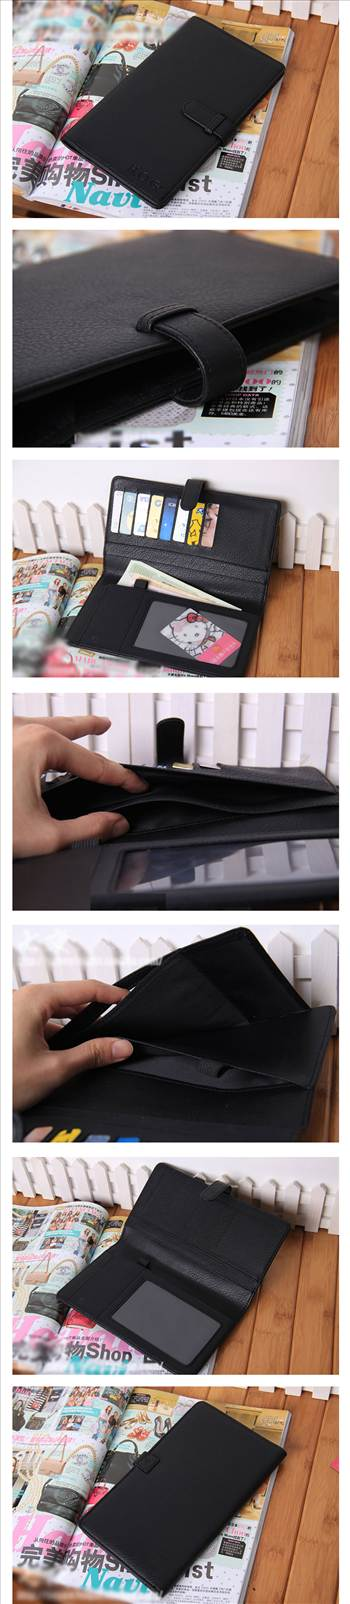 LARGE PU LEATHER WALLET PASSPORT HOLDER.jpg by luce2339